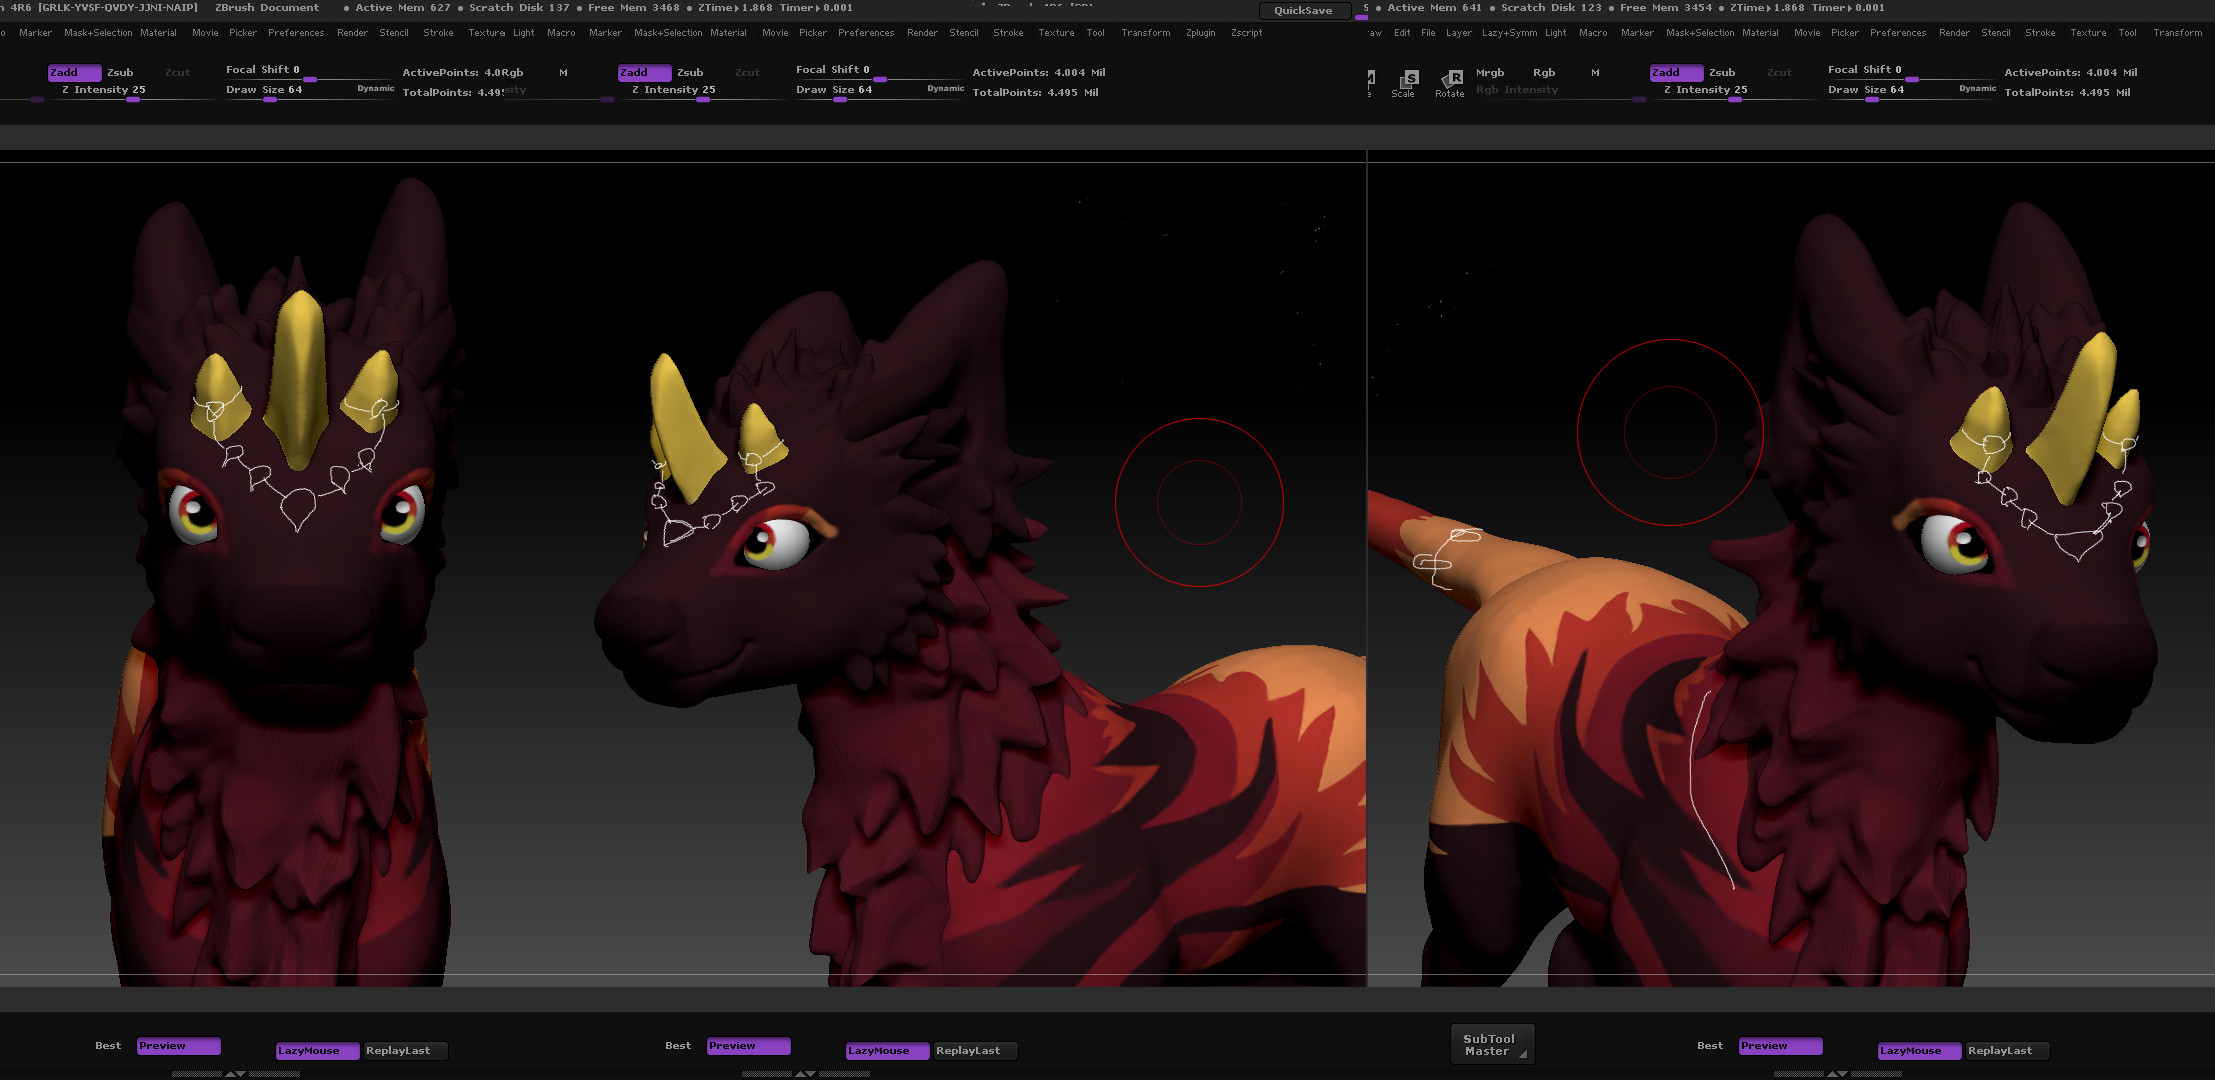 Zbrush: thought idea for horn adornments